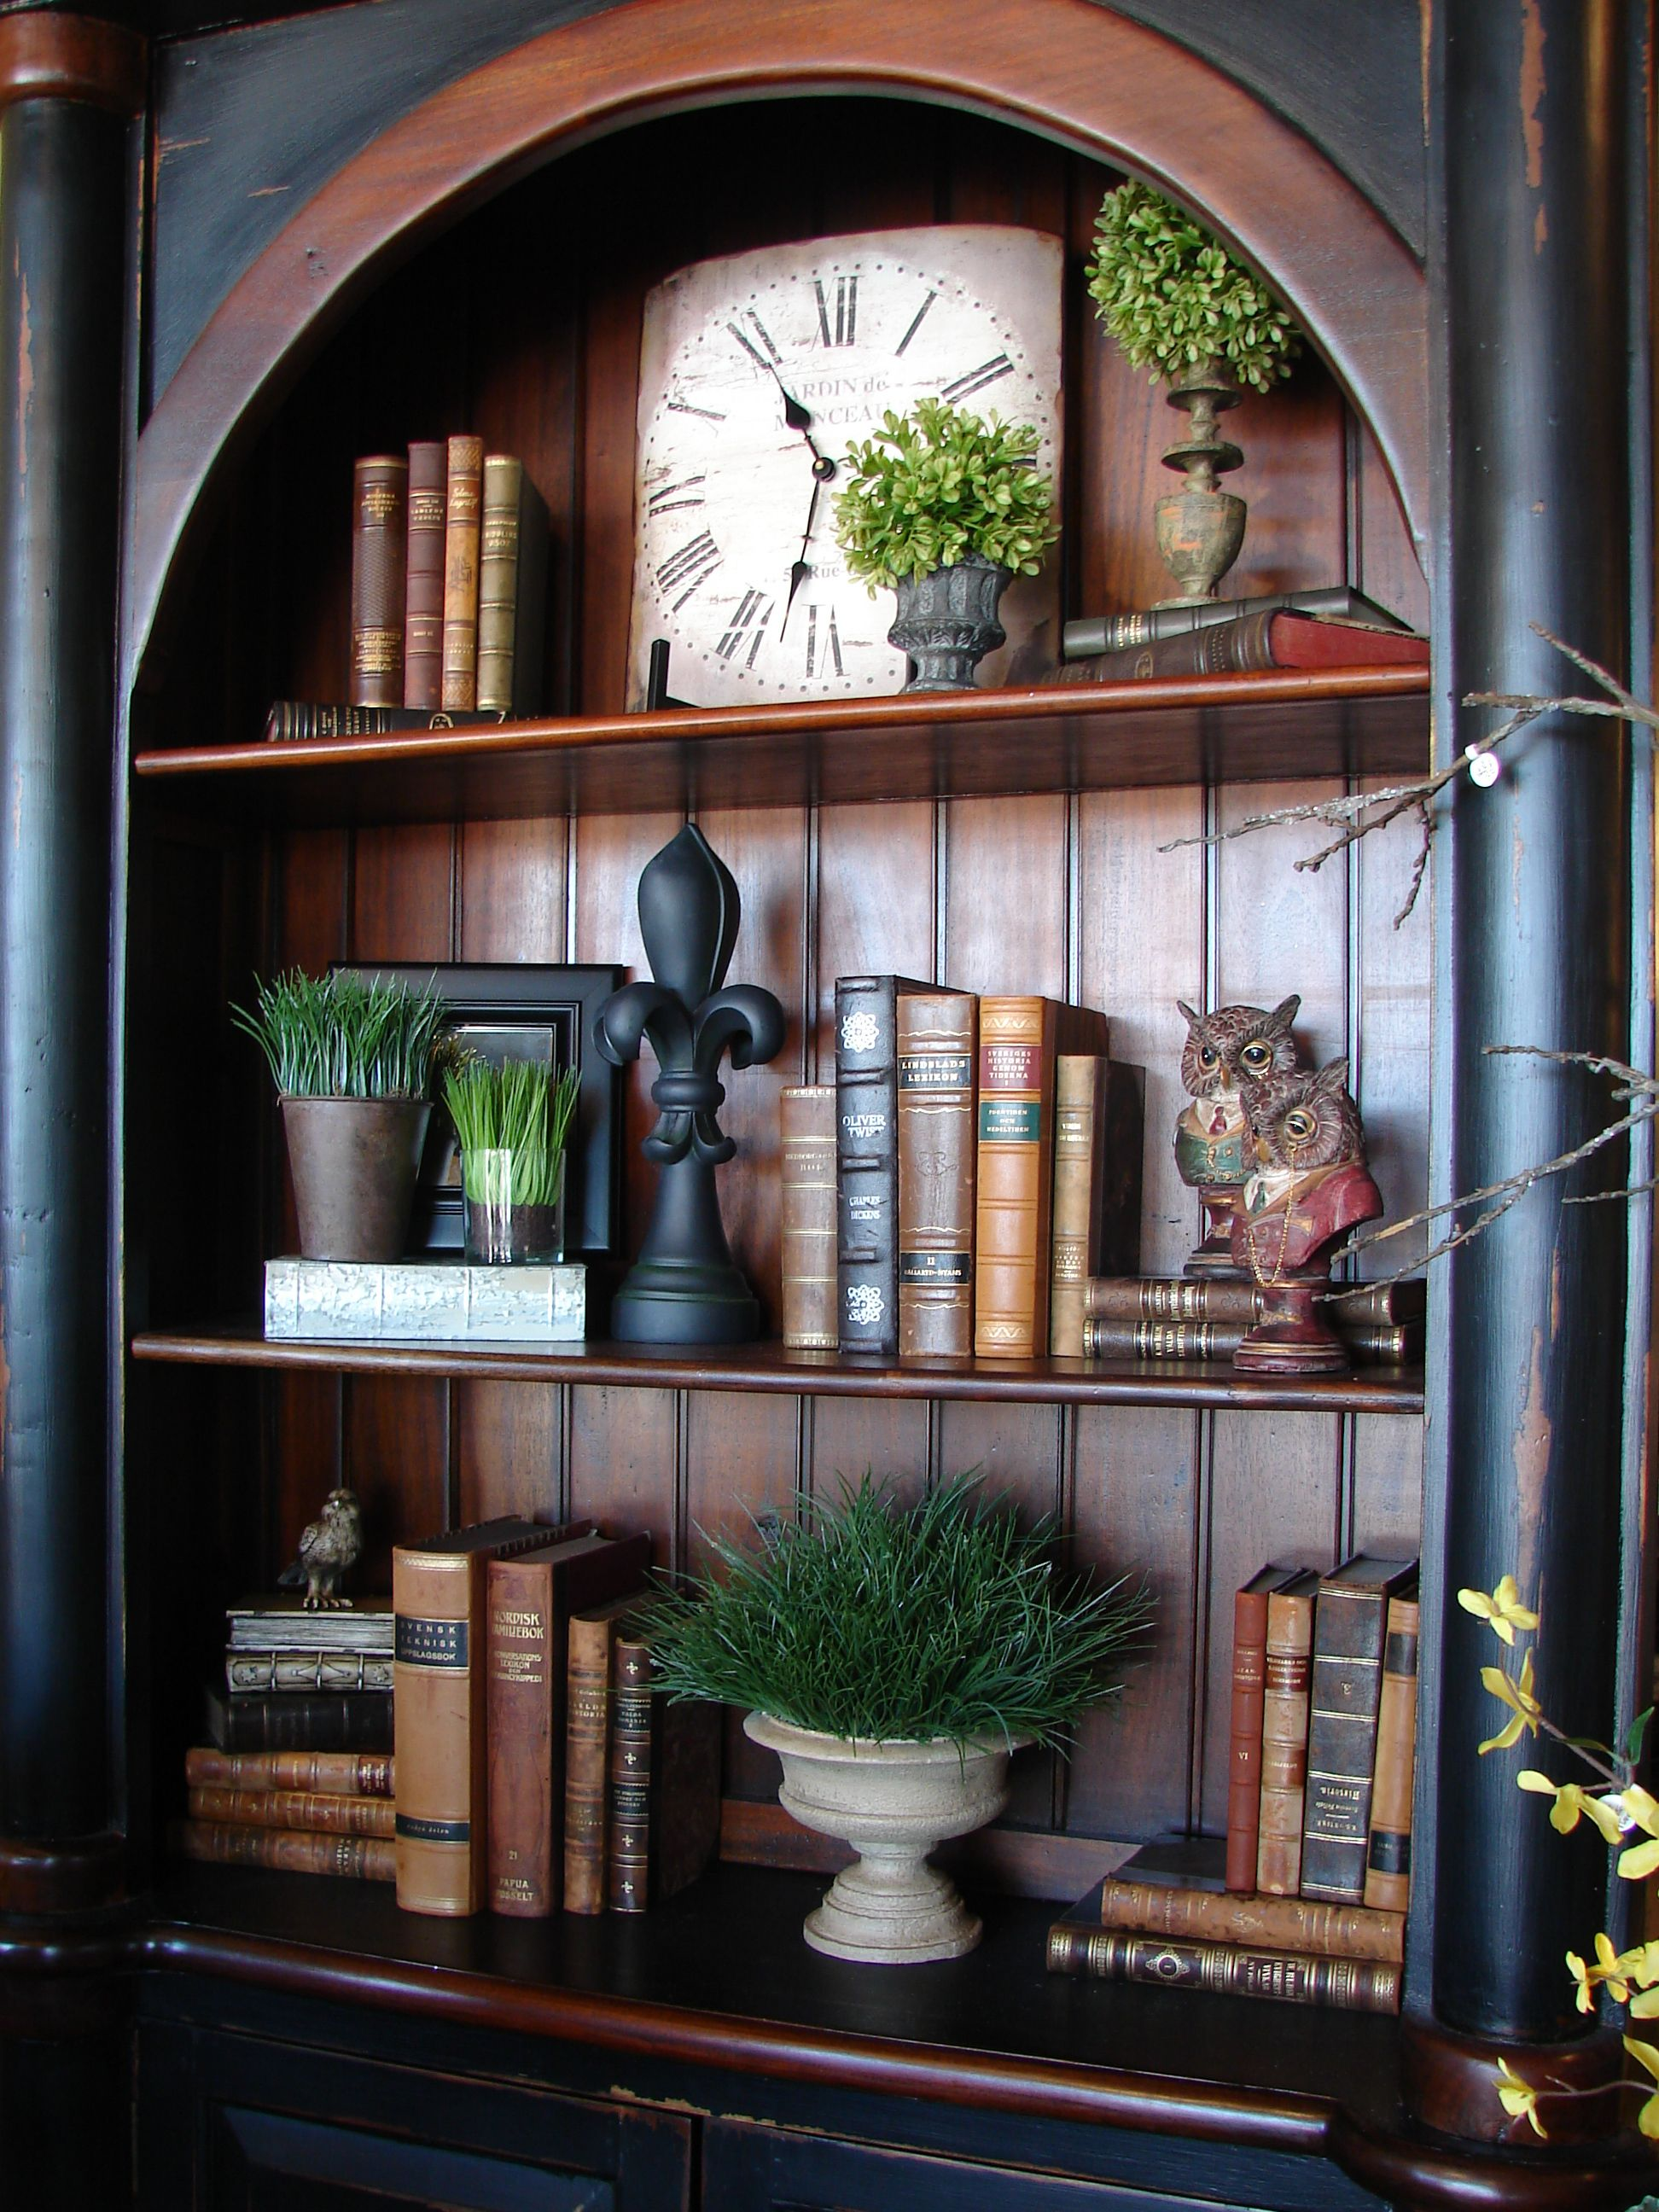 old world leather bound books used in decorating a book shelf at